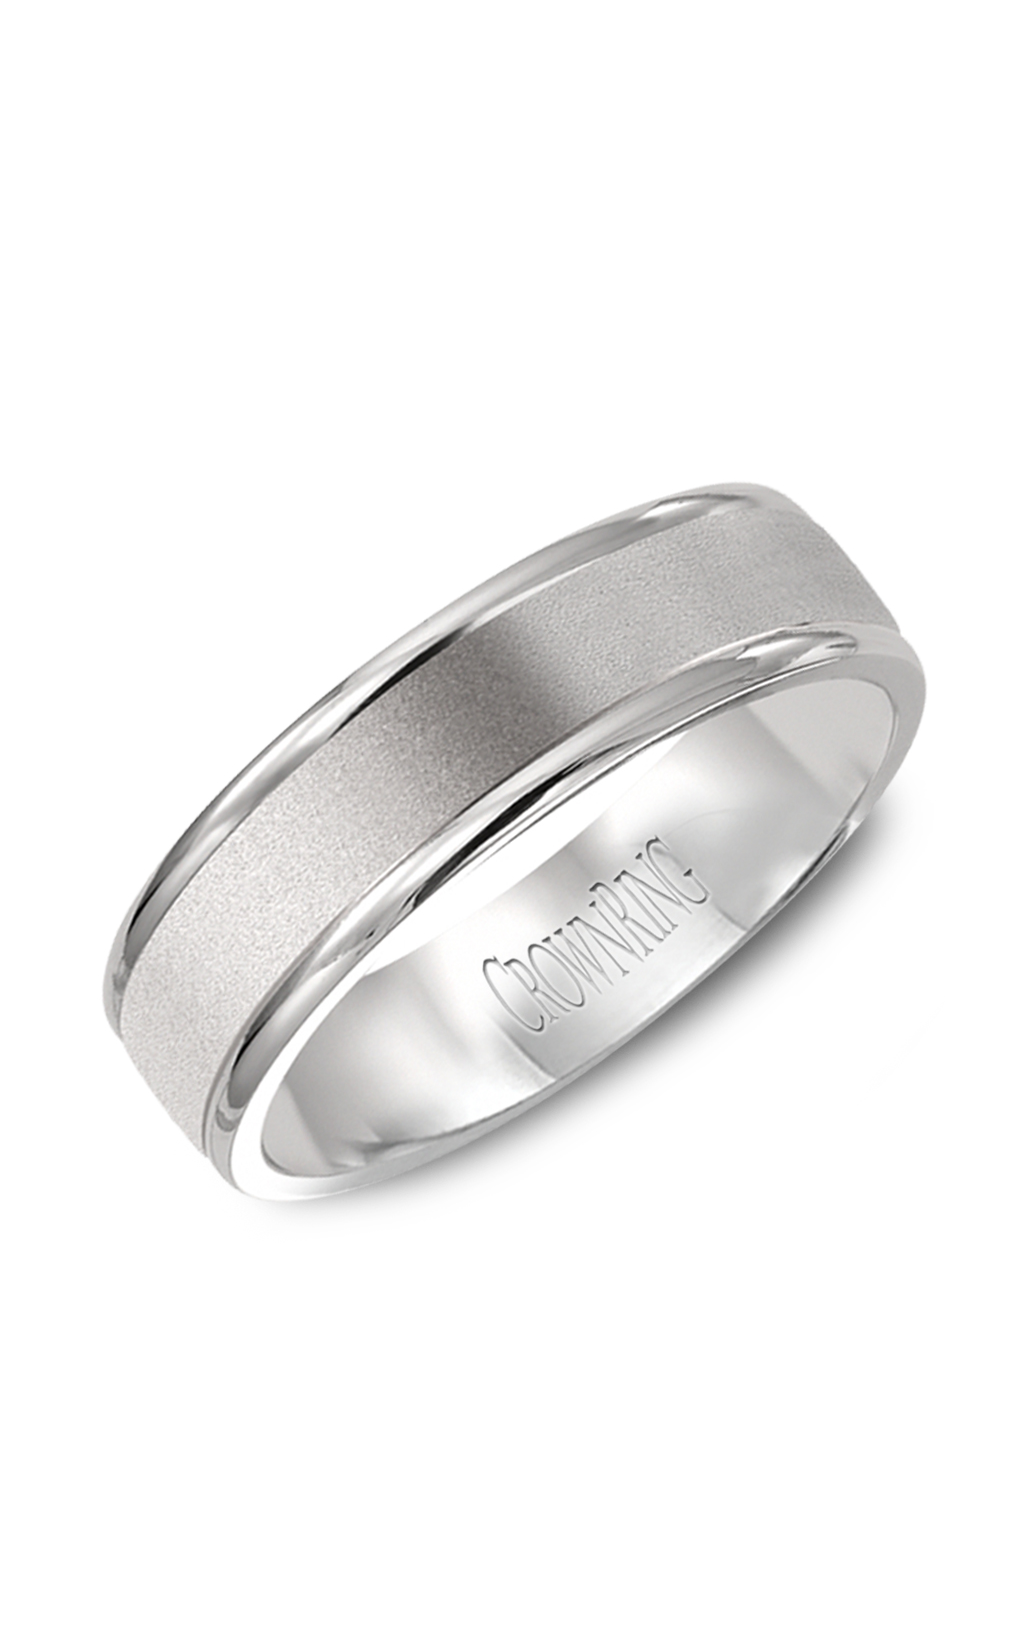 Crown Ring Men's Wedding Band WB-6925 product image